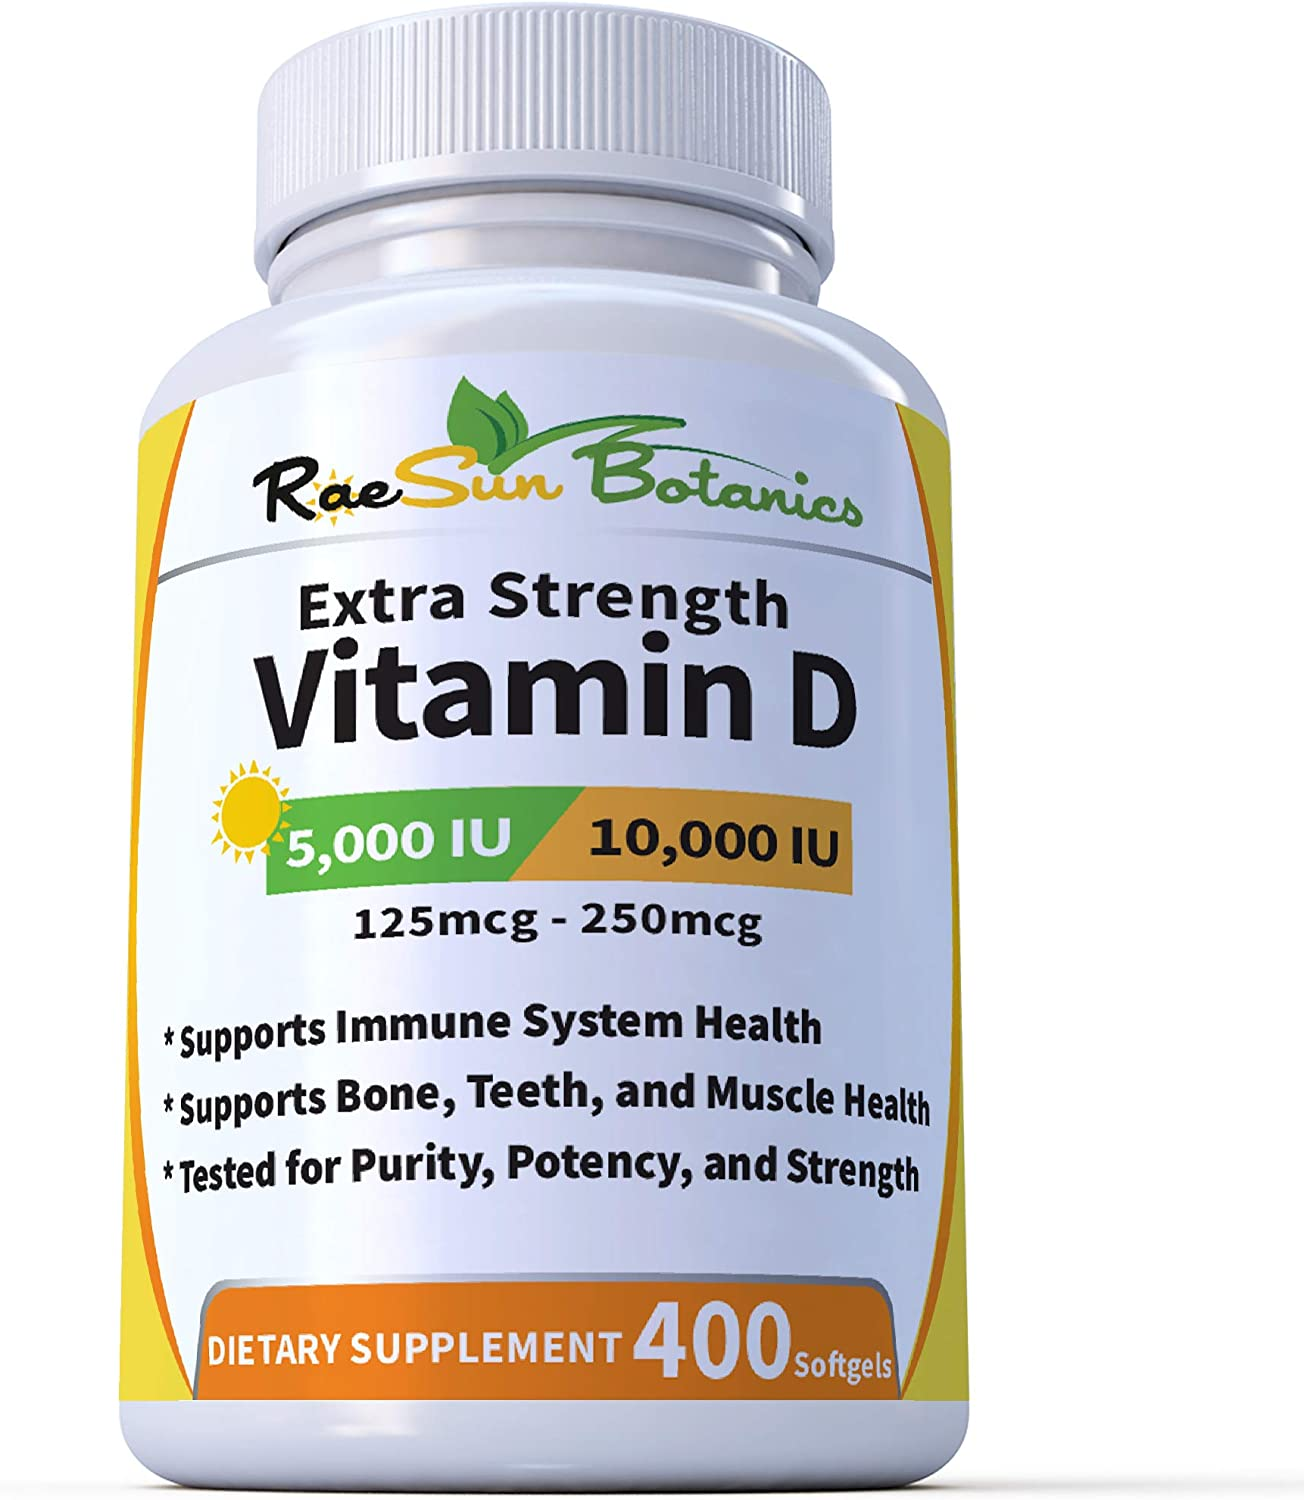 RaeSun Botanics Extra Strength Vitamin D3 Adjustable Dose - 5,000 IU (1 Year Plus Supply) | 10,000 IU (6.5 Month Supply) - Vitamin D Supplement - Gluten Free, Non GMO, Made in USA [400 Softgels]